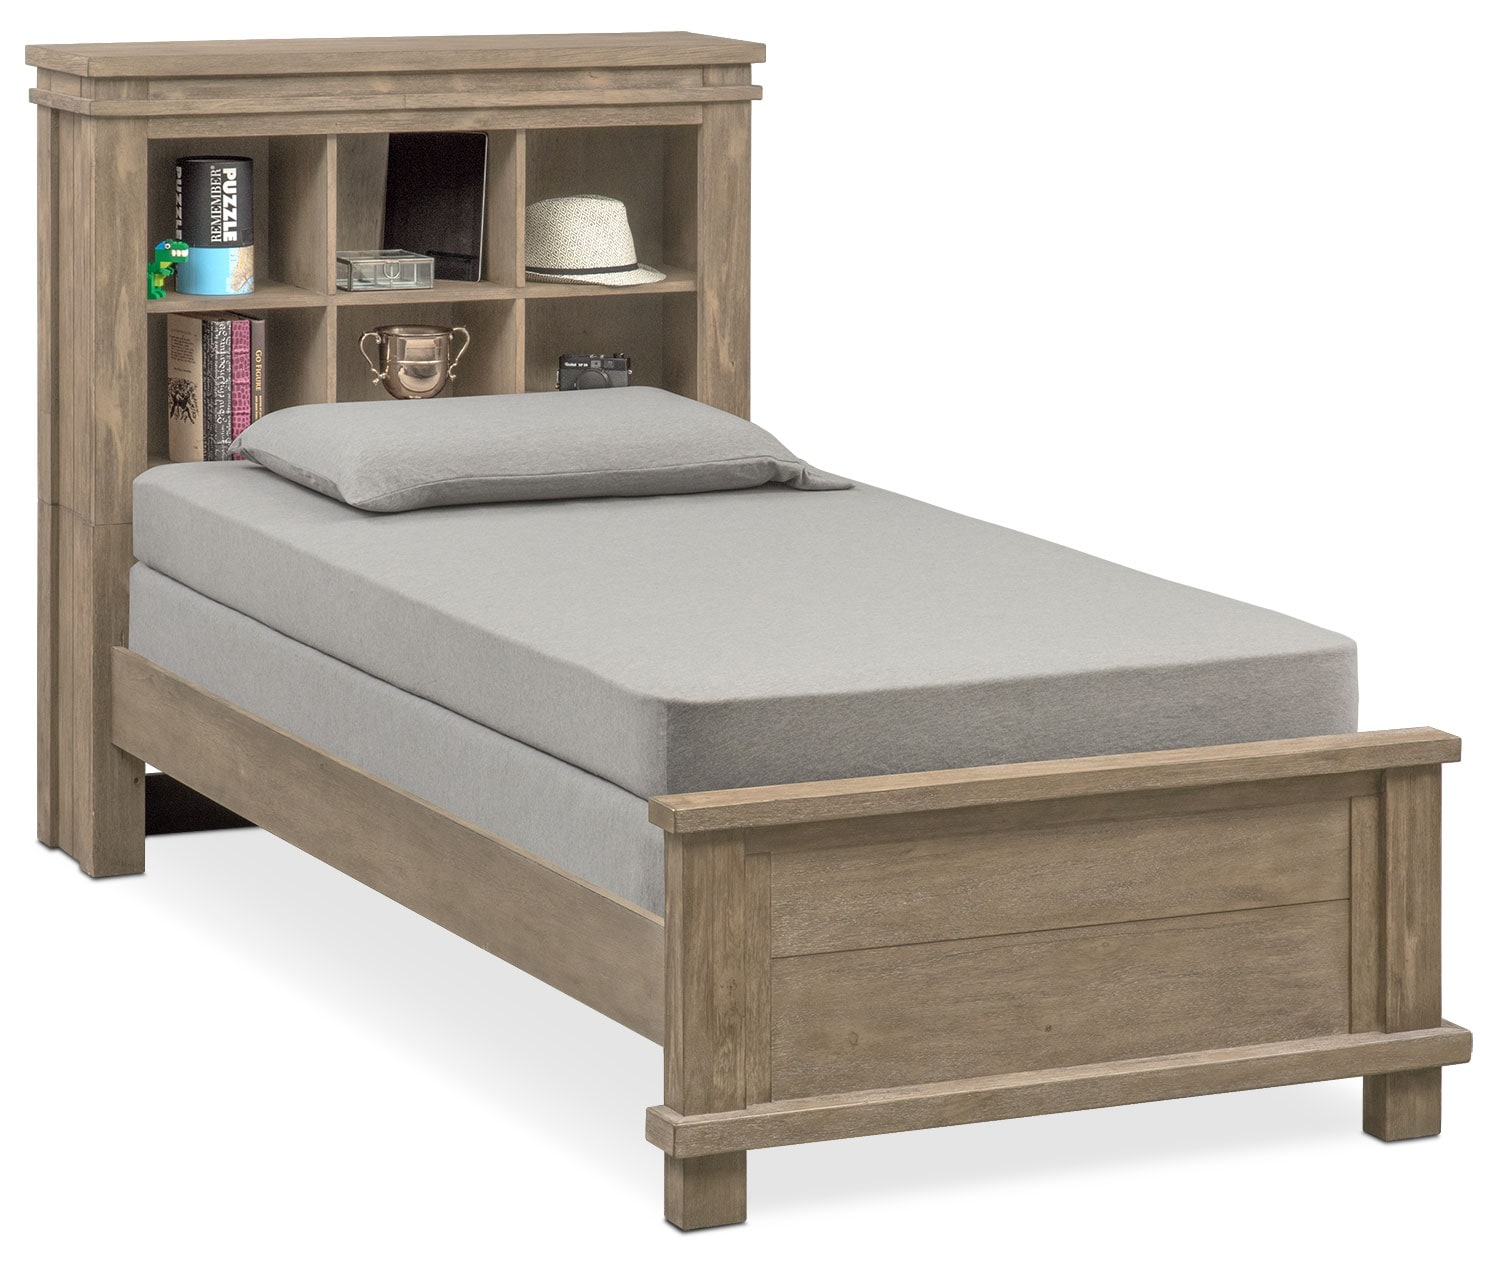 Tribeca Youth Twin Bookcase Bed - Gray